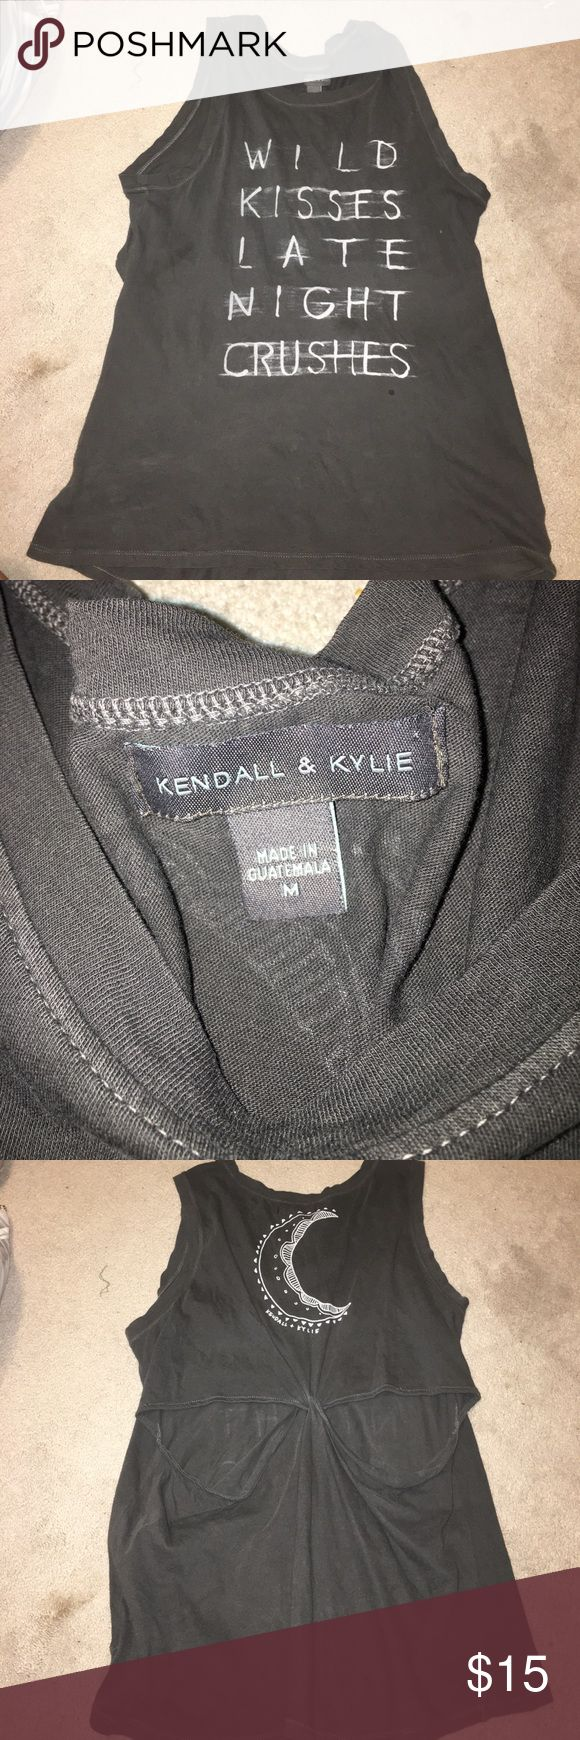 Kendall and Kylie pacsun shirt size M Worn a few times!!! From Kendall and Kylie Jenner's pacsun line.... super cute size M Kendall & Kylie Tops Tank Tops